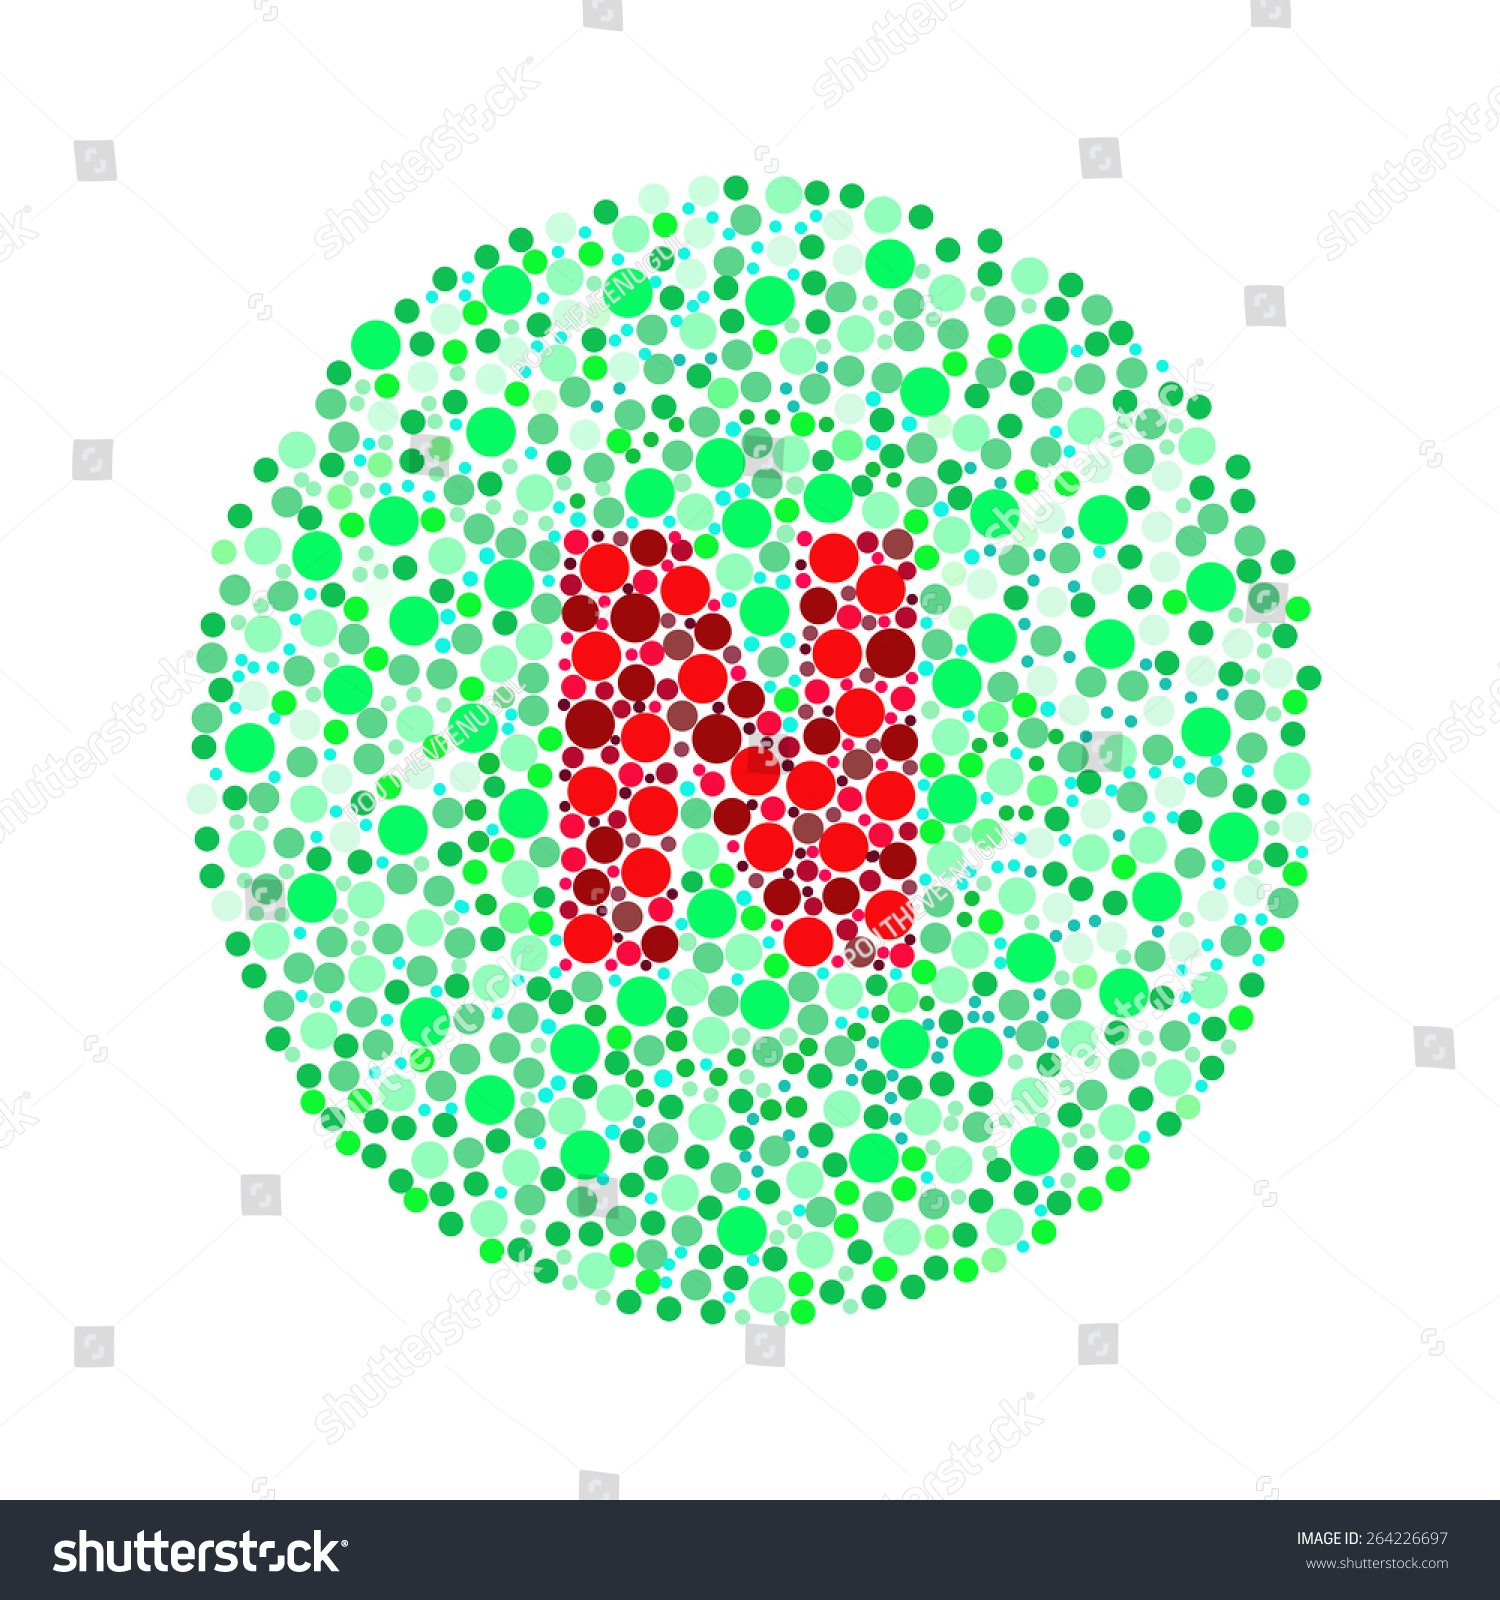 Ishihara Test Daltonismcolor Blindness Disease Perception Stock ...